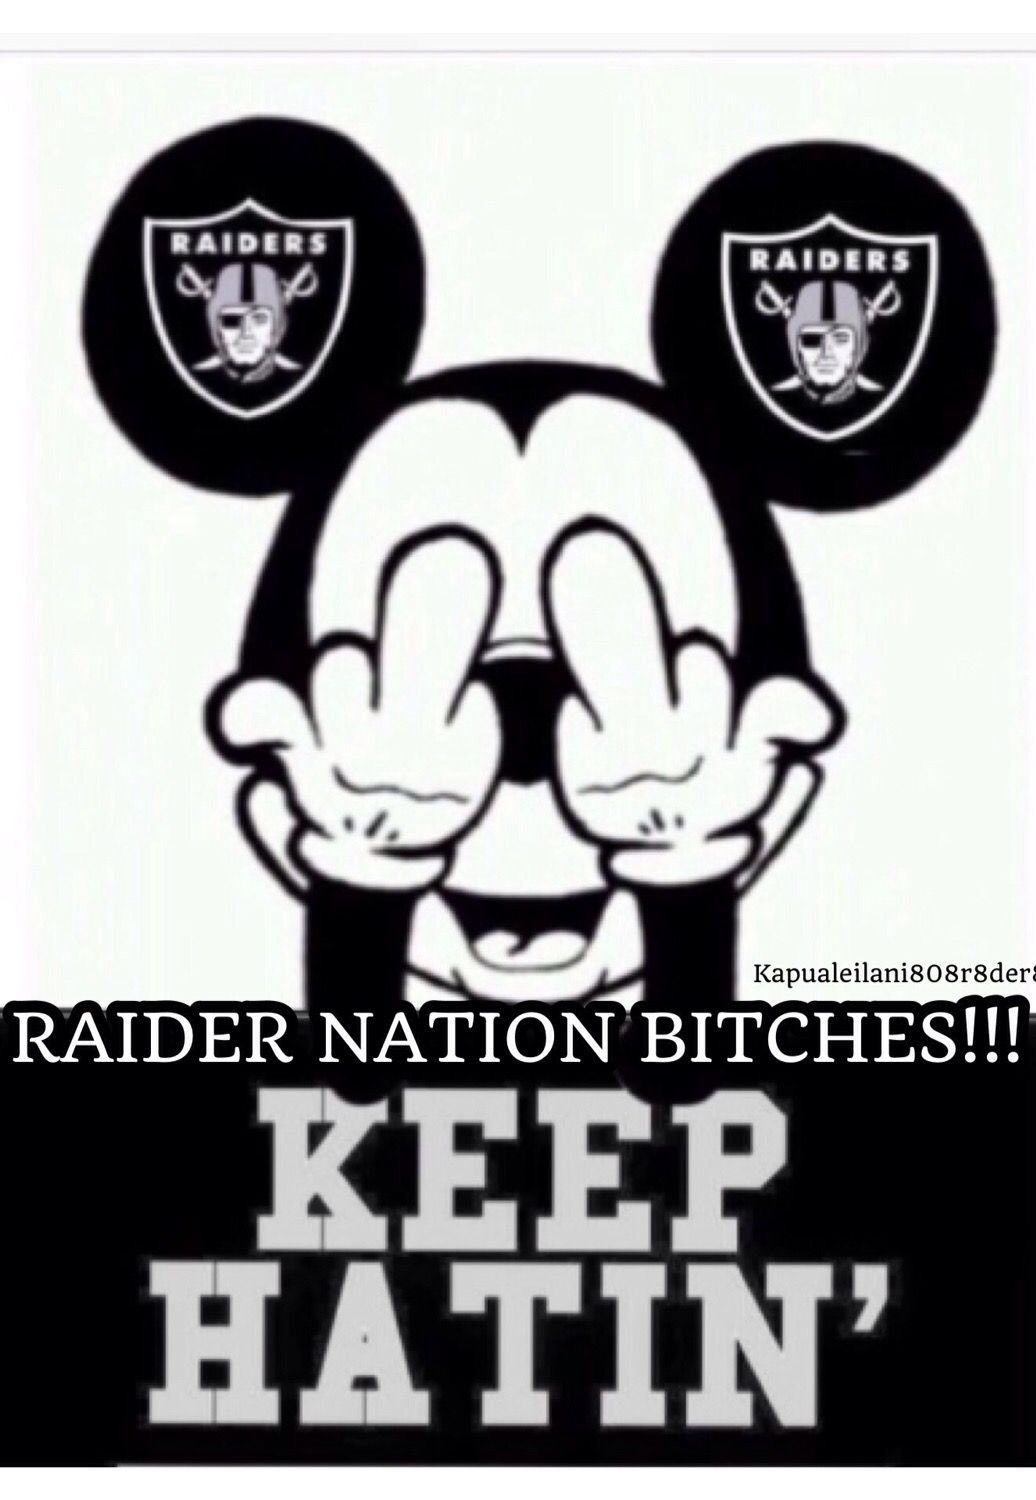 Pin By Cynthia Peterson On Raiders Pinterest Mickey Mouse